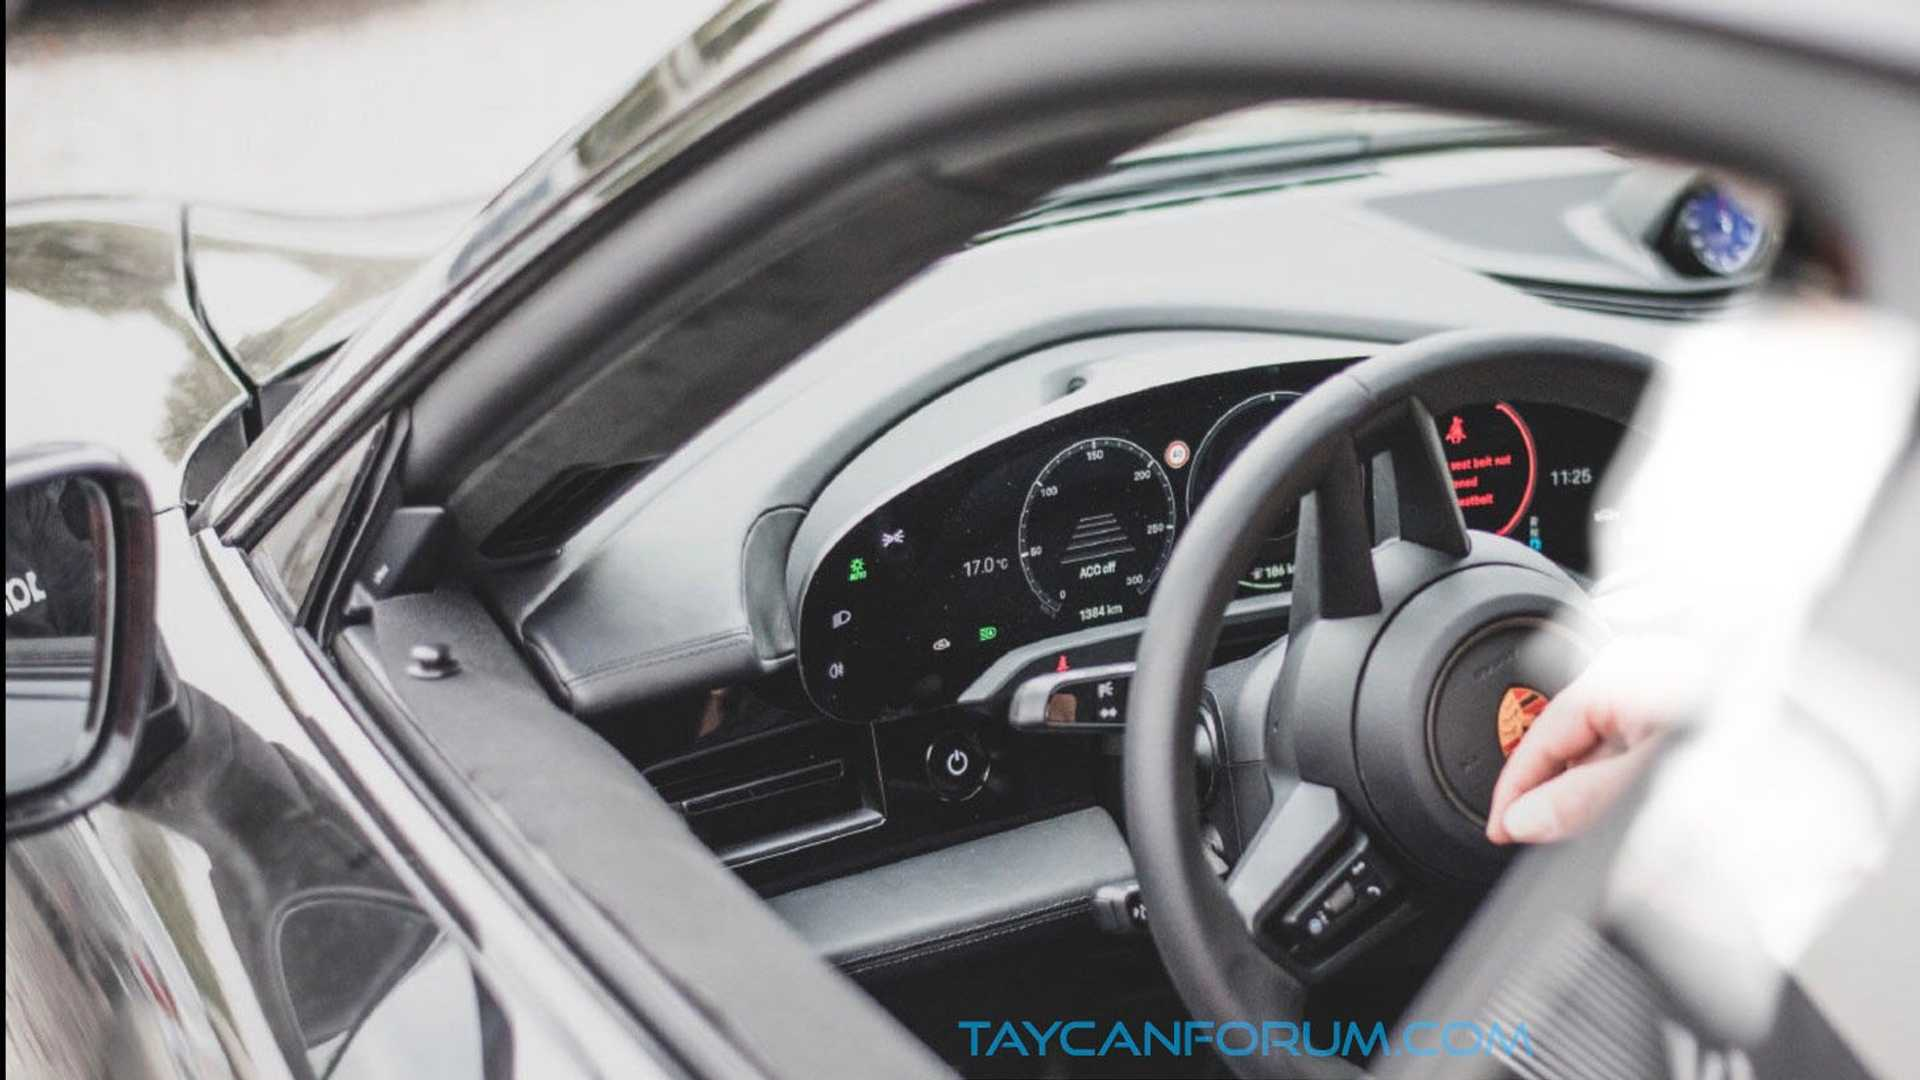 Porsche Taycan Interior Instrument Panel Caught In Spy Photo